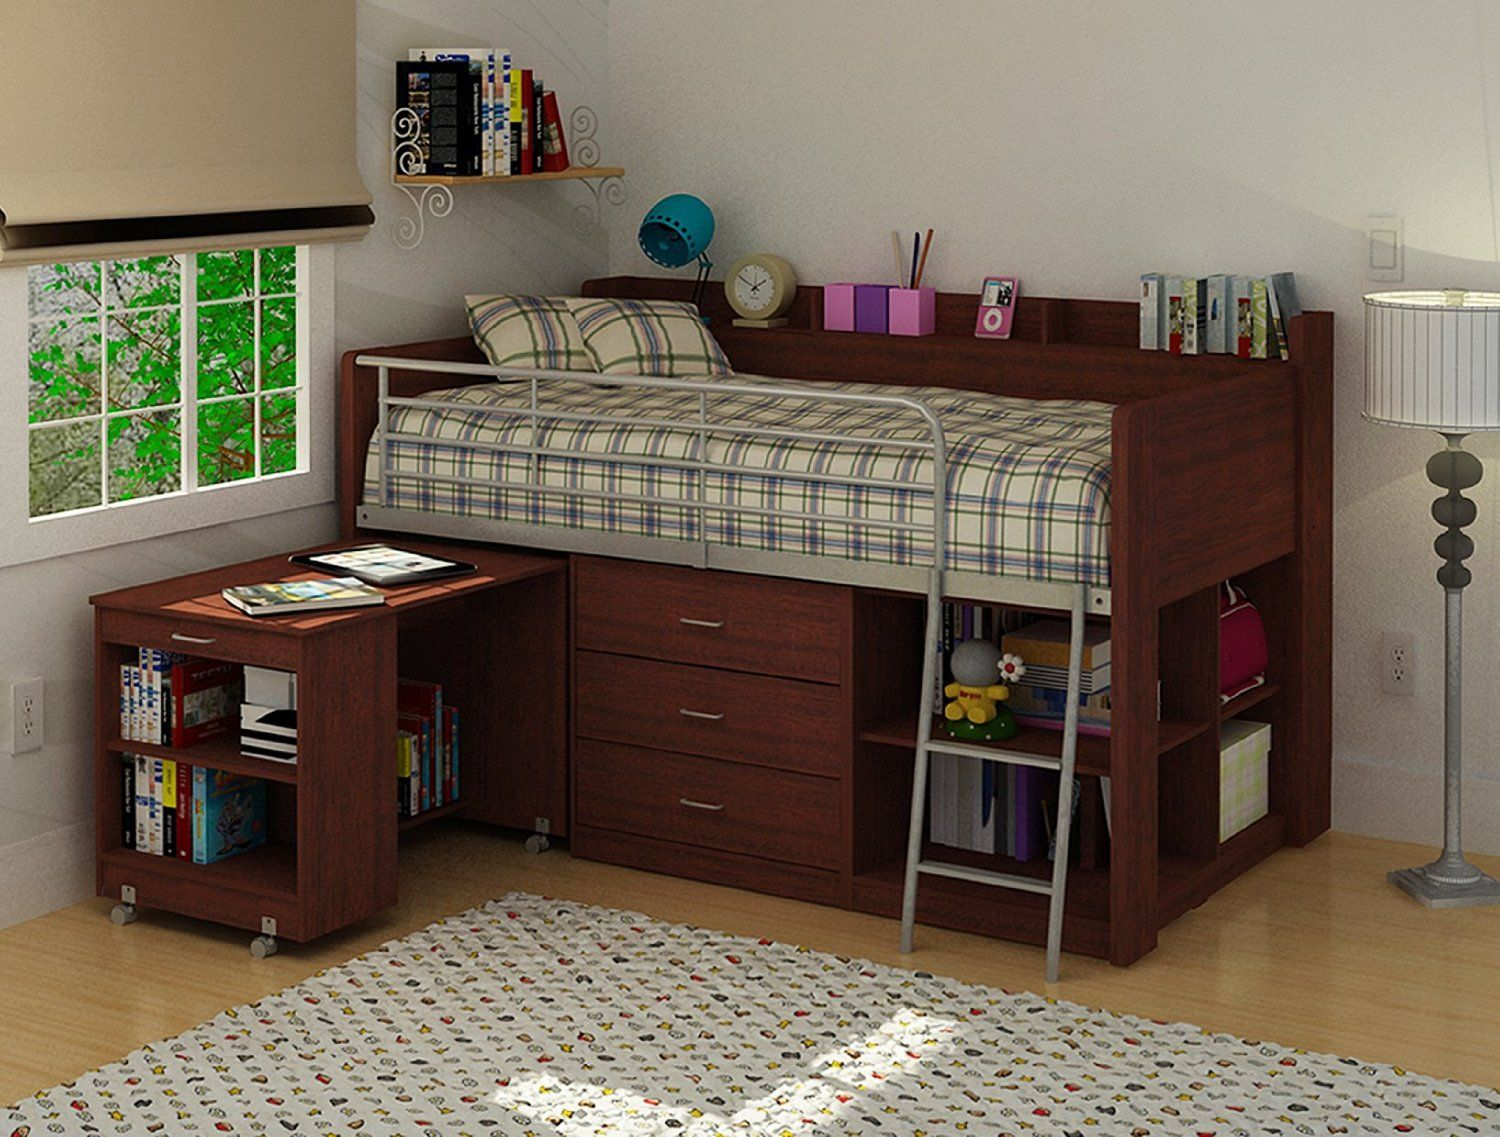 Amazing Full Size Low Loft Bed Marley S Bedroom Pinterest Book